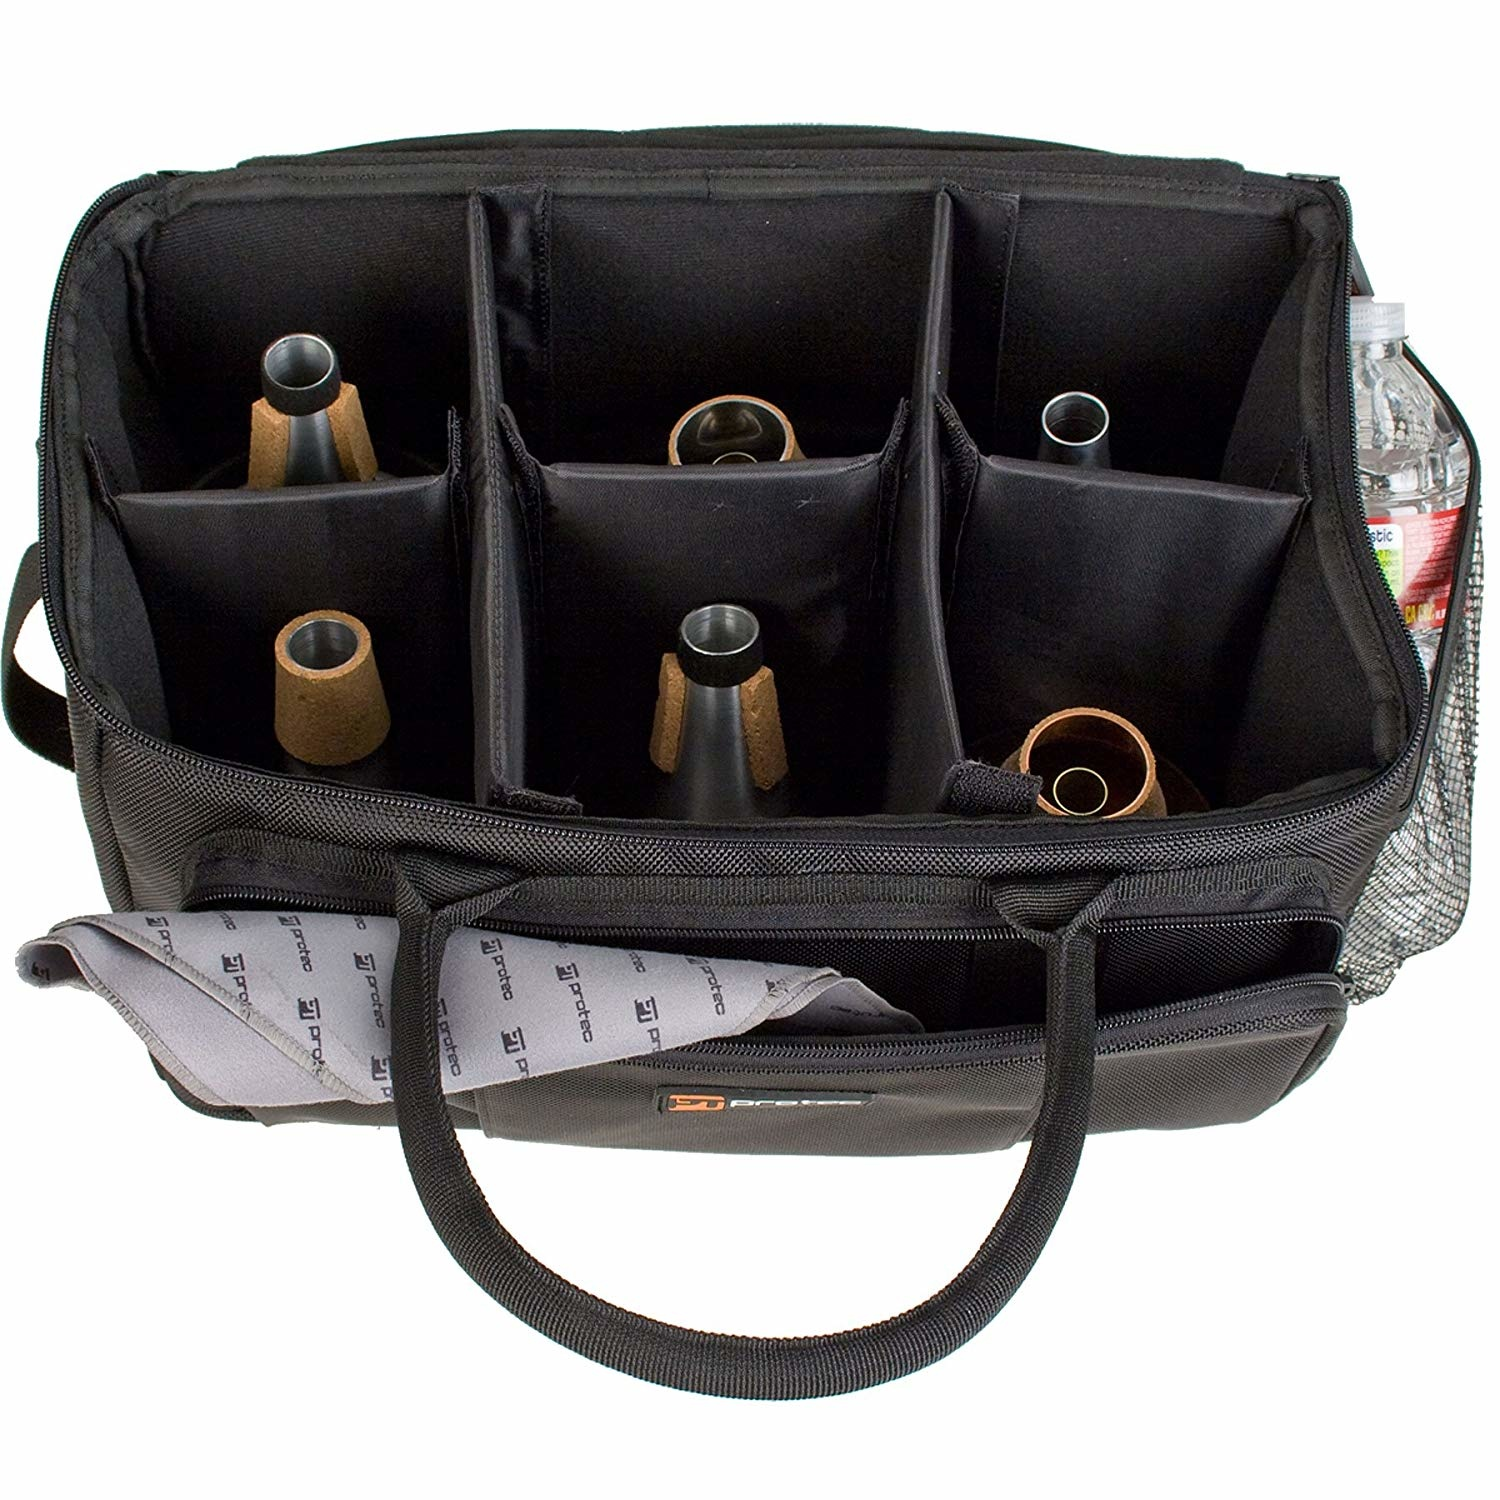 Protec Protec Trumpet Mute Bag – Six Pack with Modular Walls